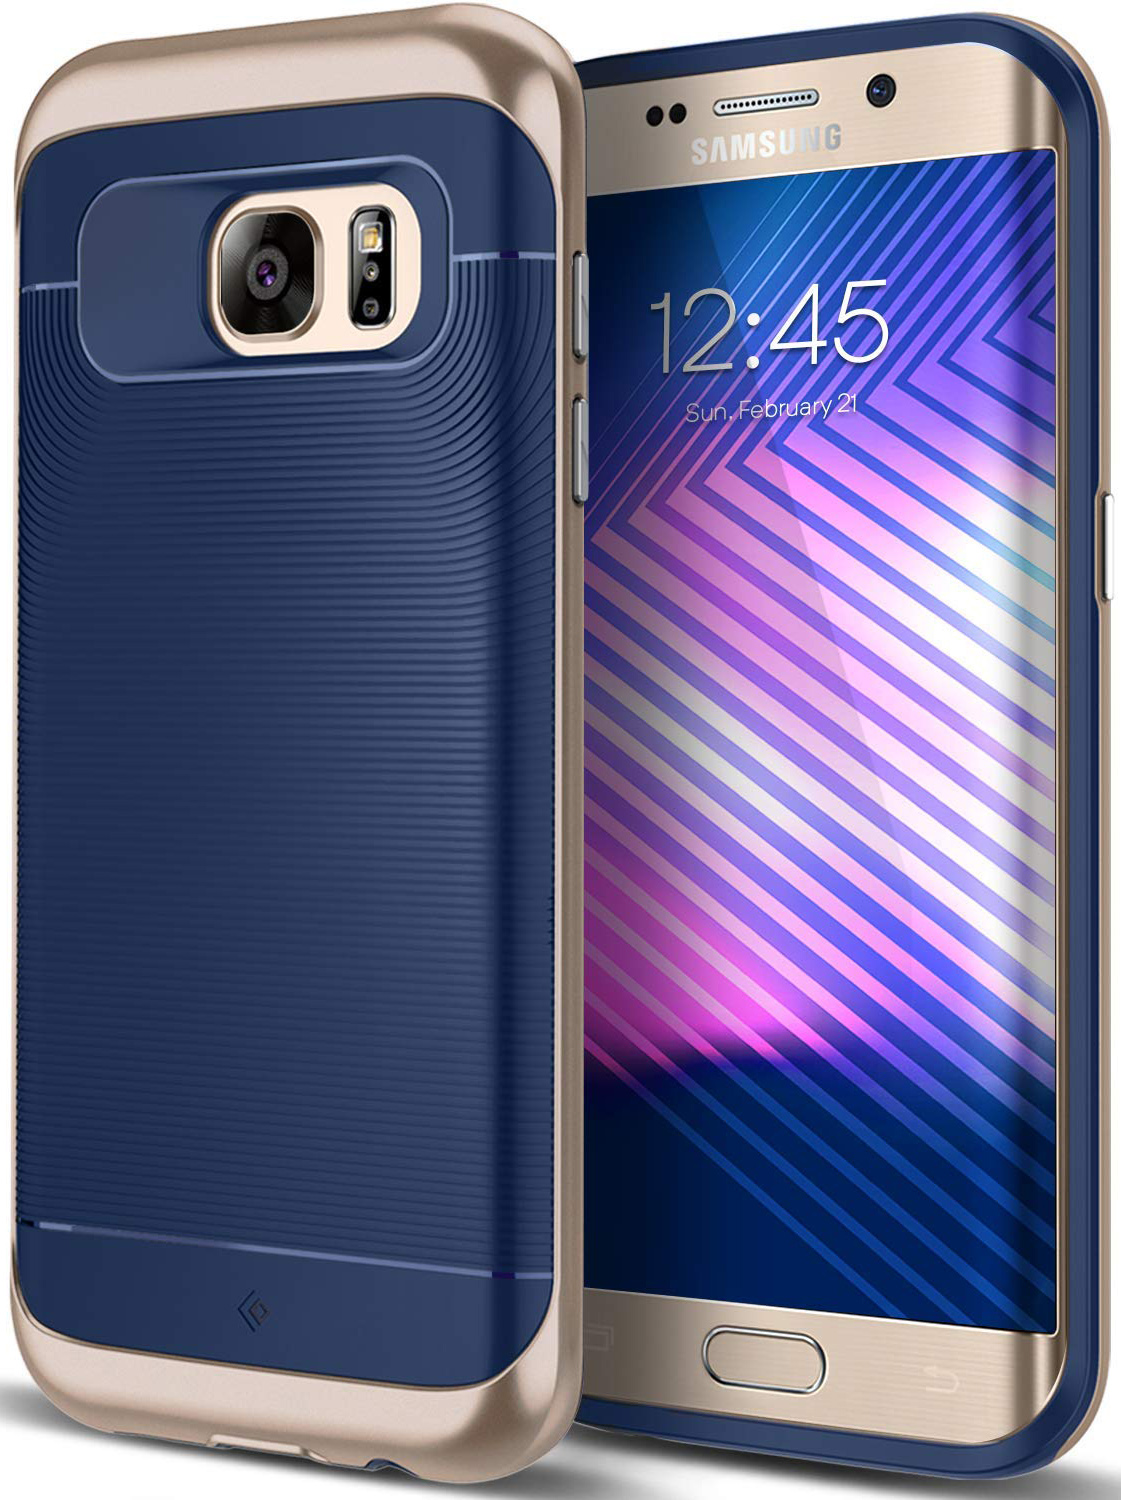 The Best Samsung Galaxy S7 Edge Cases Aivanet